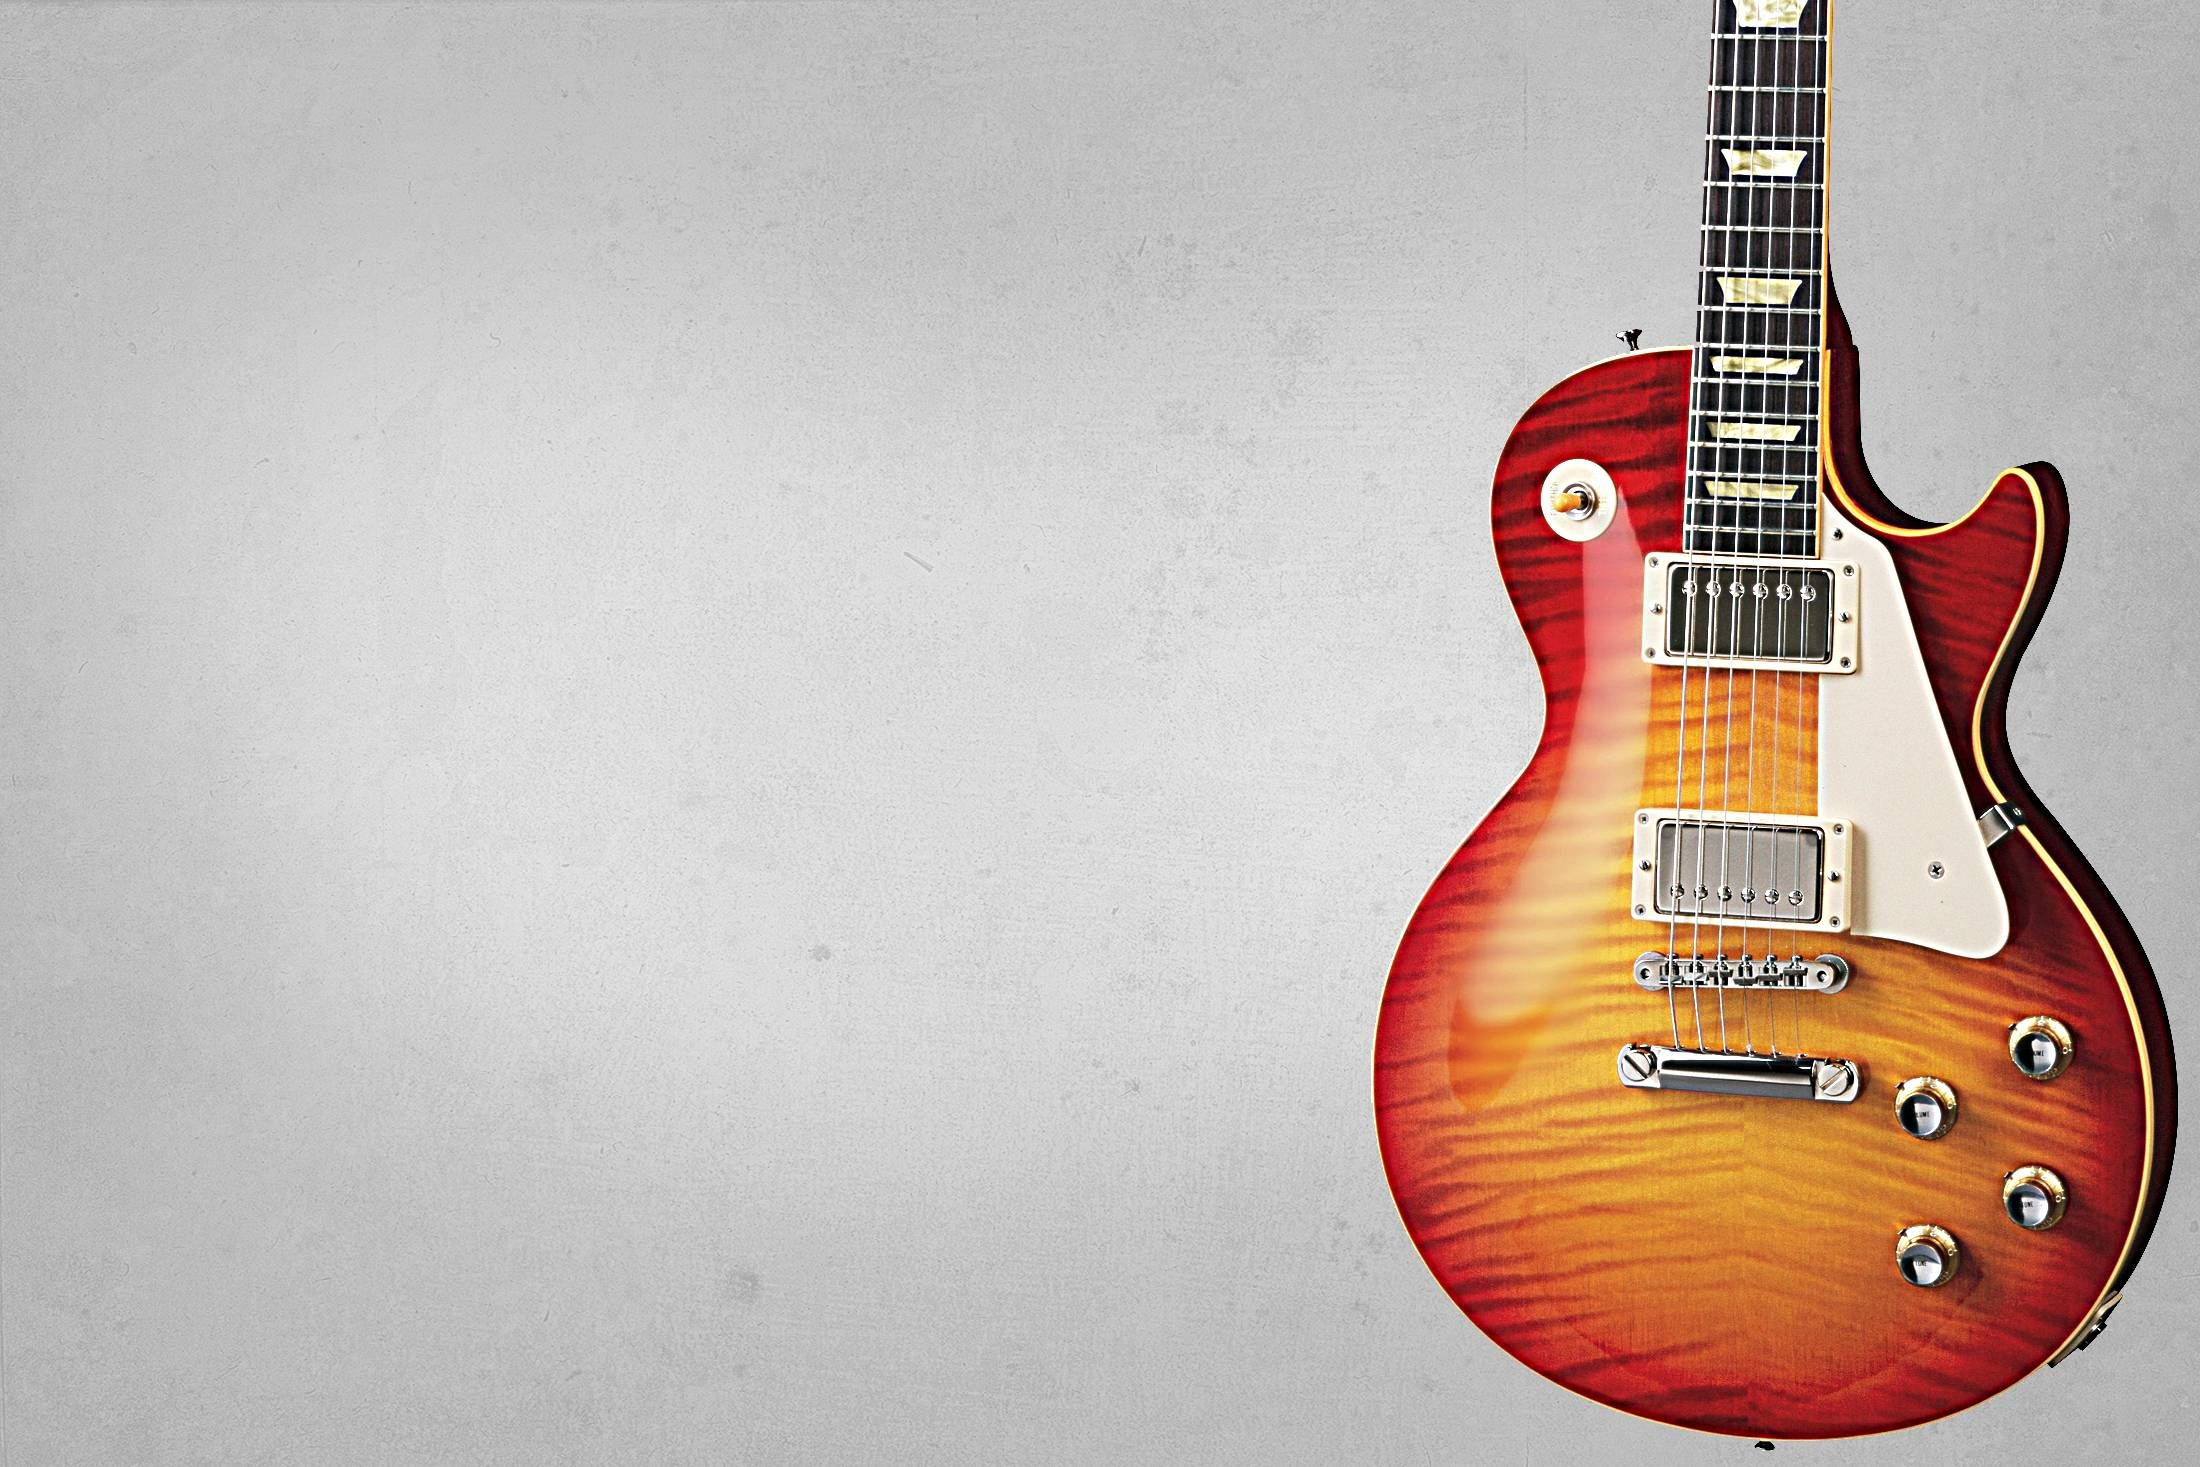 gibson les paul wallpapers wallpaper cave all wallpapers